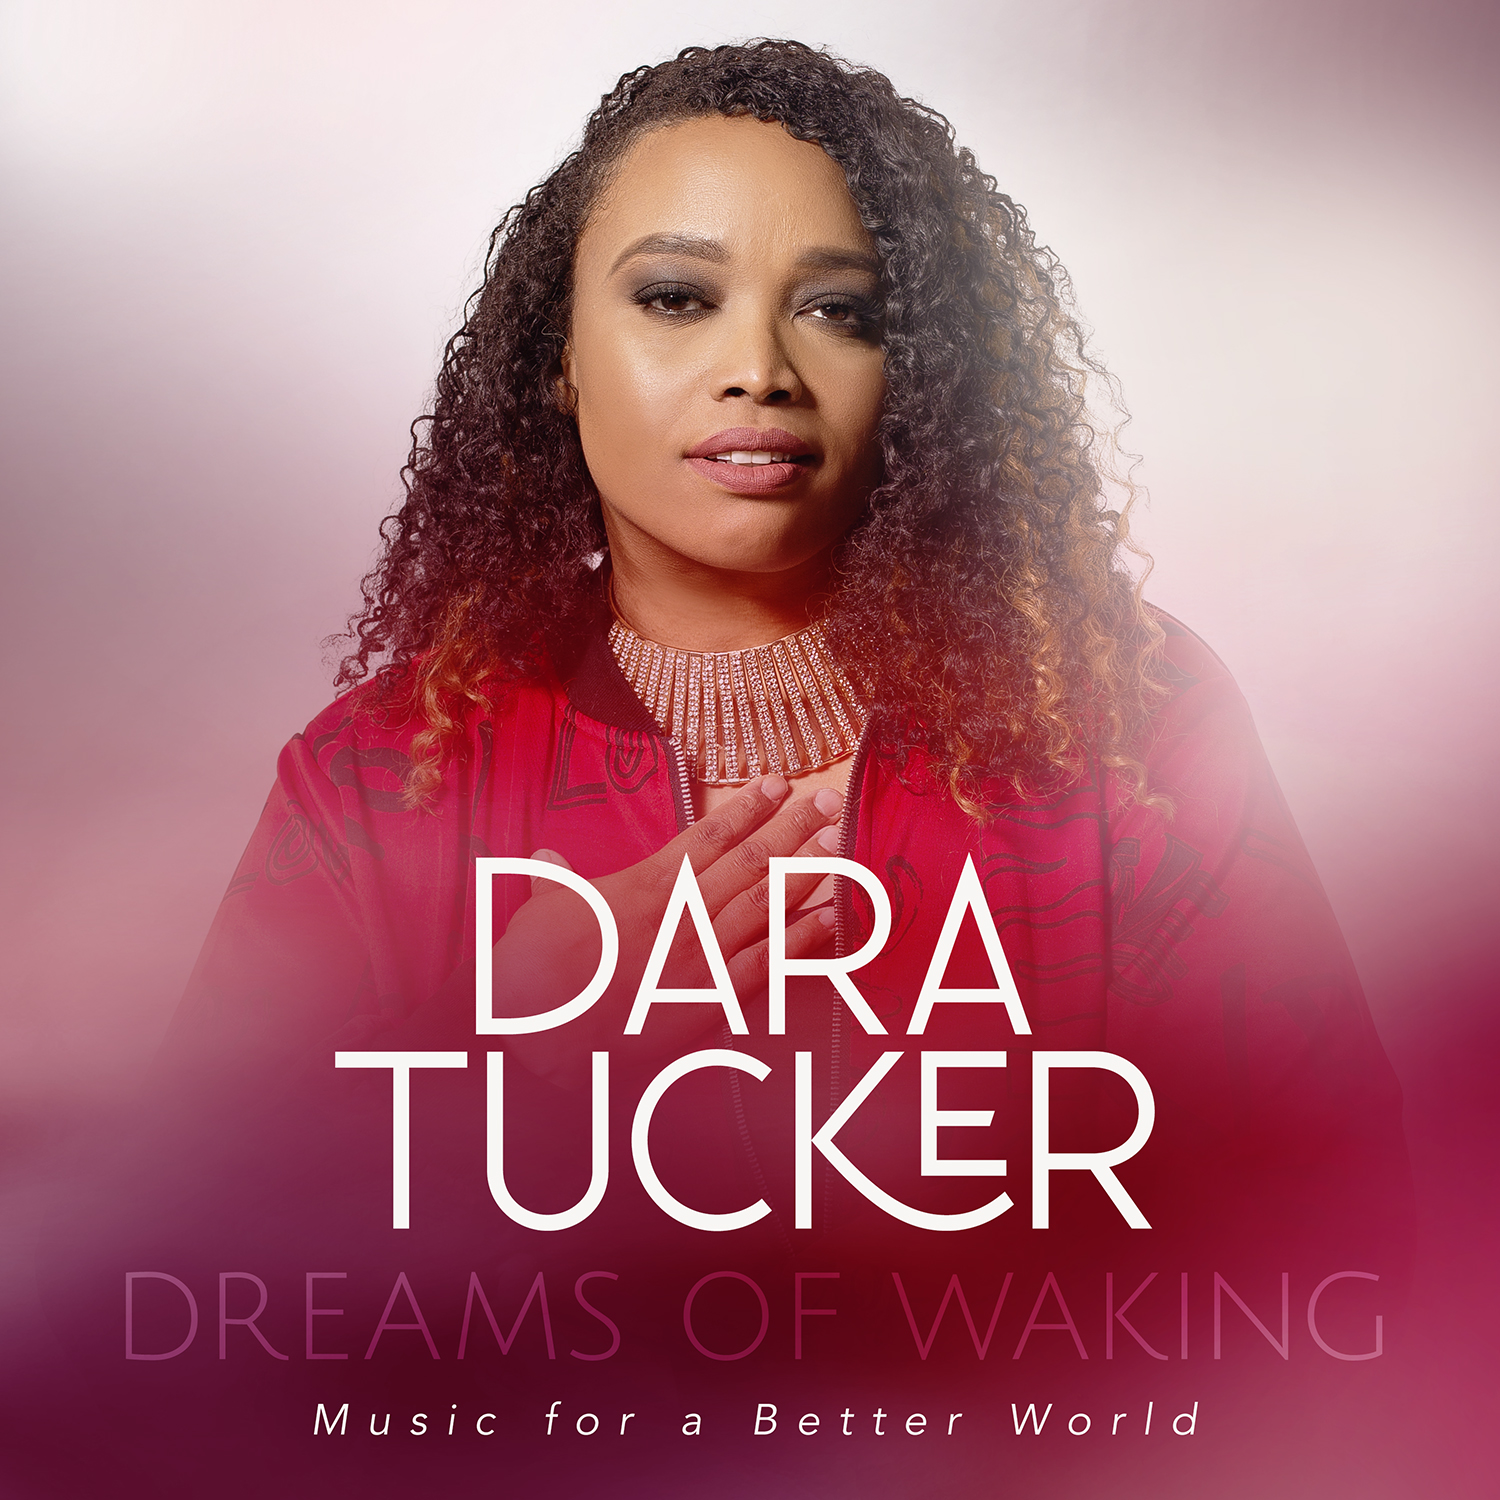 NEW RELEASE: Award-Winning Vocalist Dara Tucker to Release 'Dreams of Waking: Music For a Better World' on May 28, 2021 via Green Hill Music